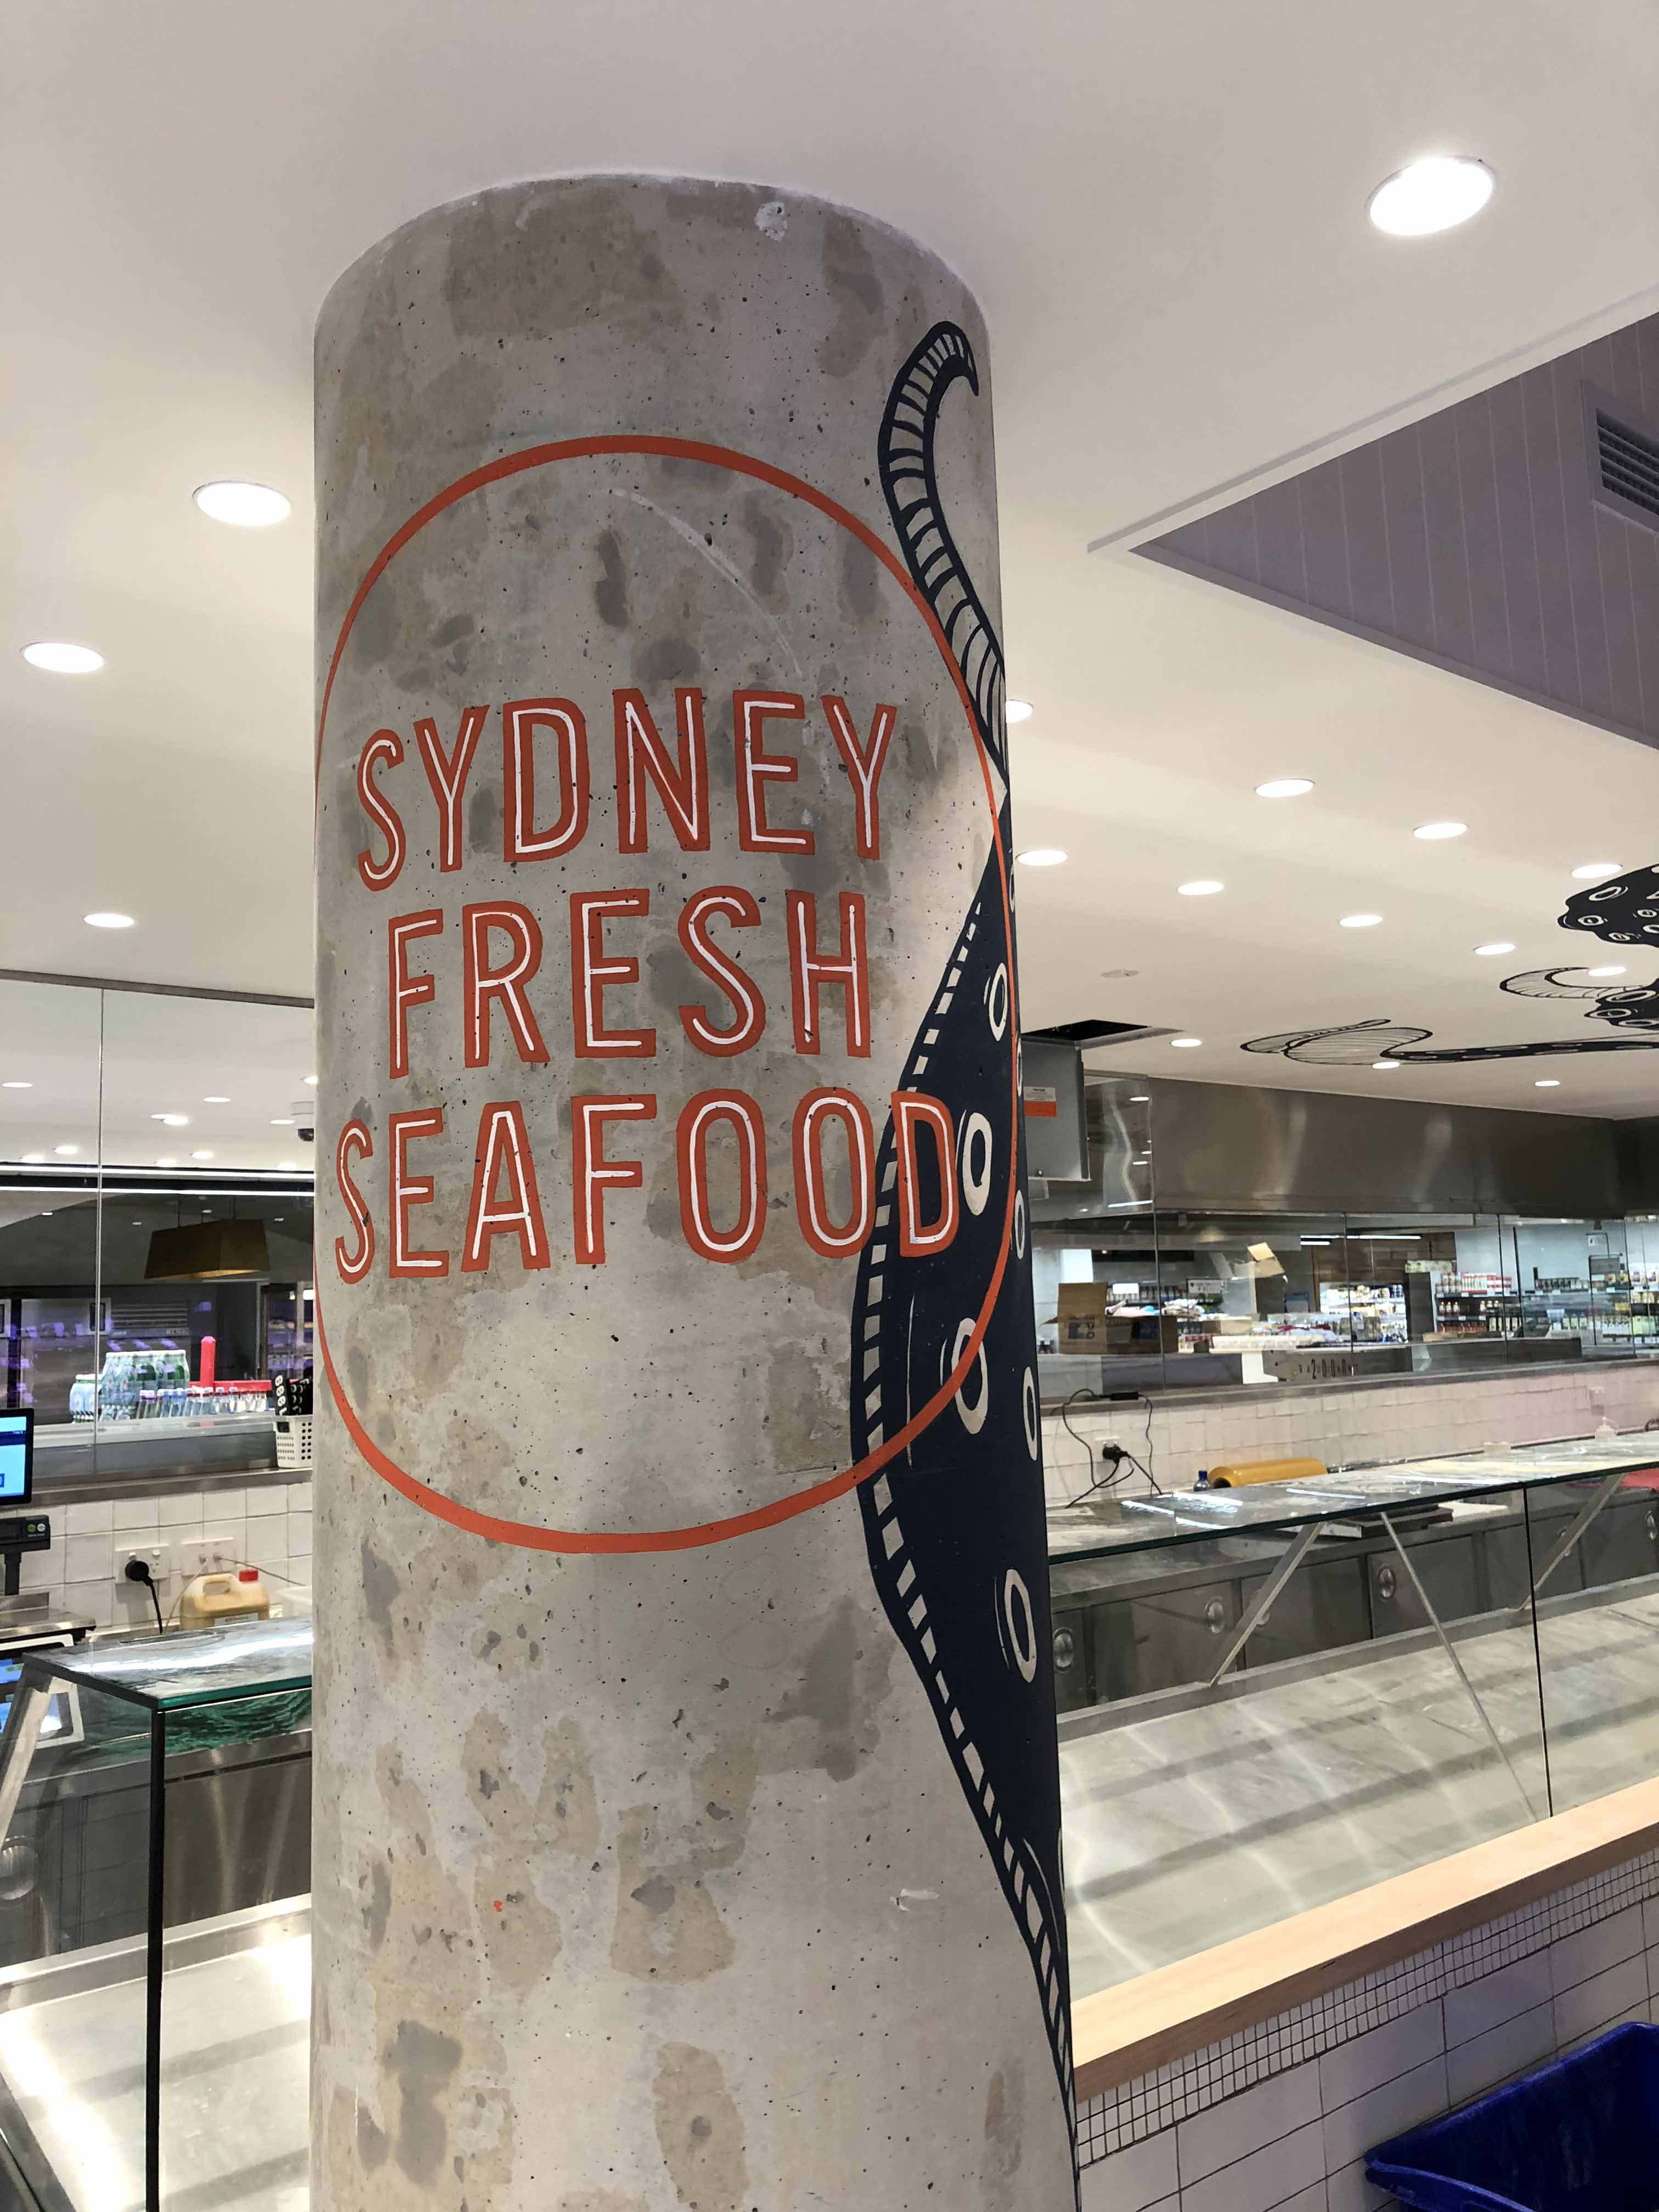 the-art-of-wall-sydney-fresh-seafood-octopus-mural-5